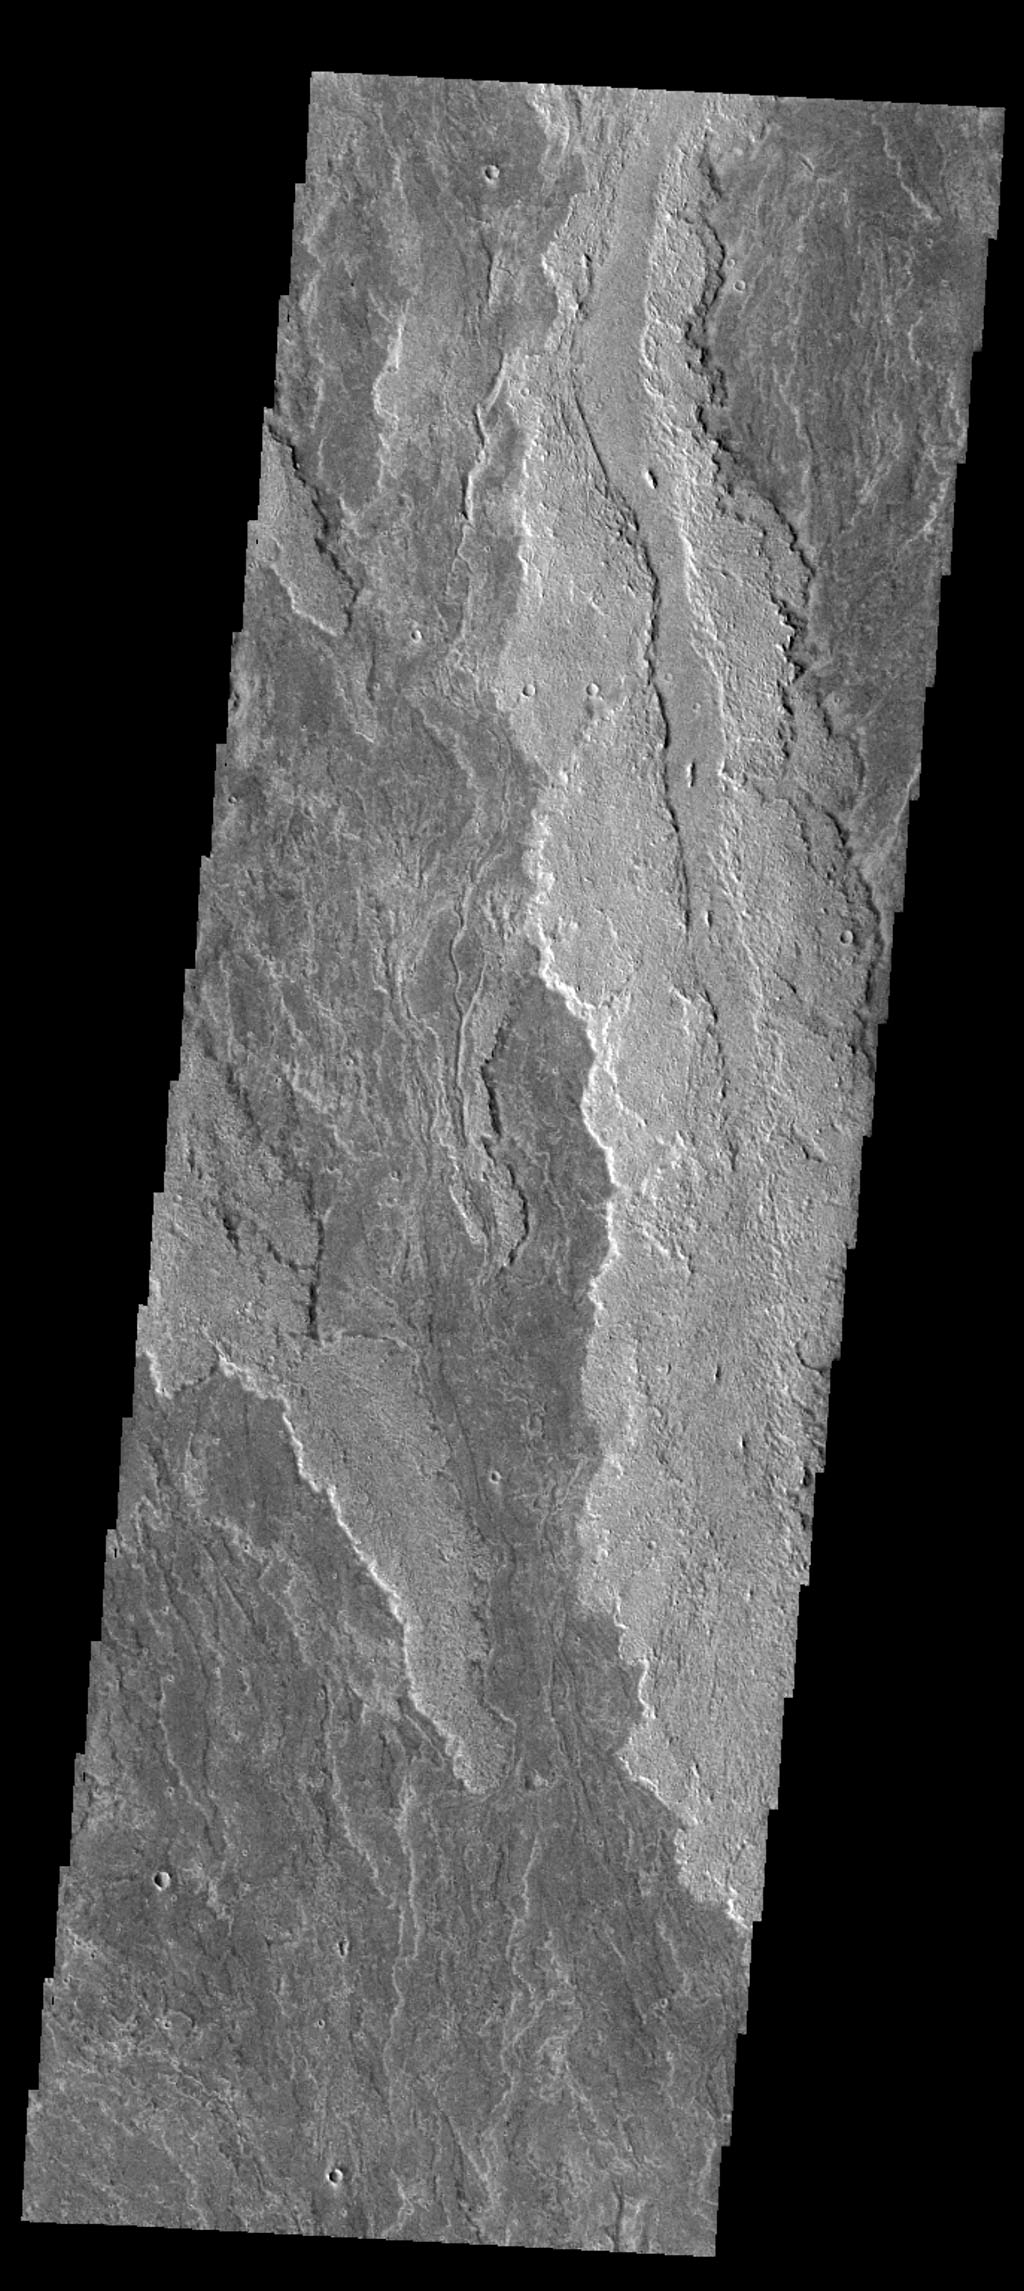 The volcanic flows in this image captured by NASA's Mars Odyssey spacecraft are part of Daedalia Planum, an extensive flow field originating from Arsia Mons.